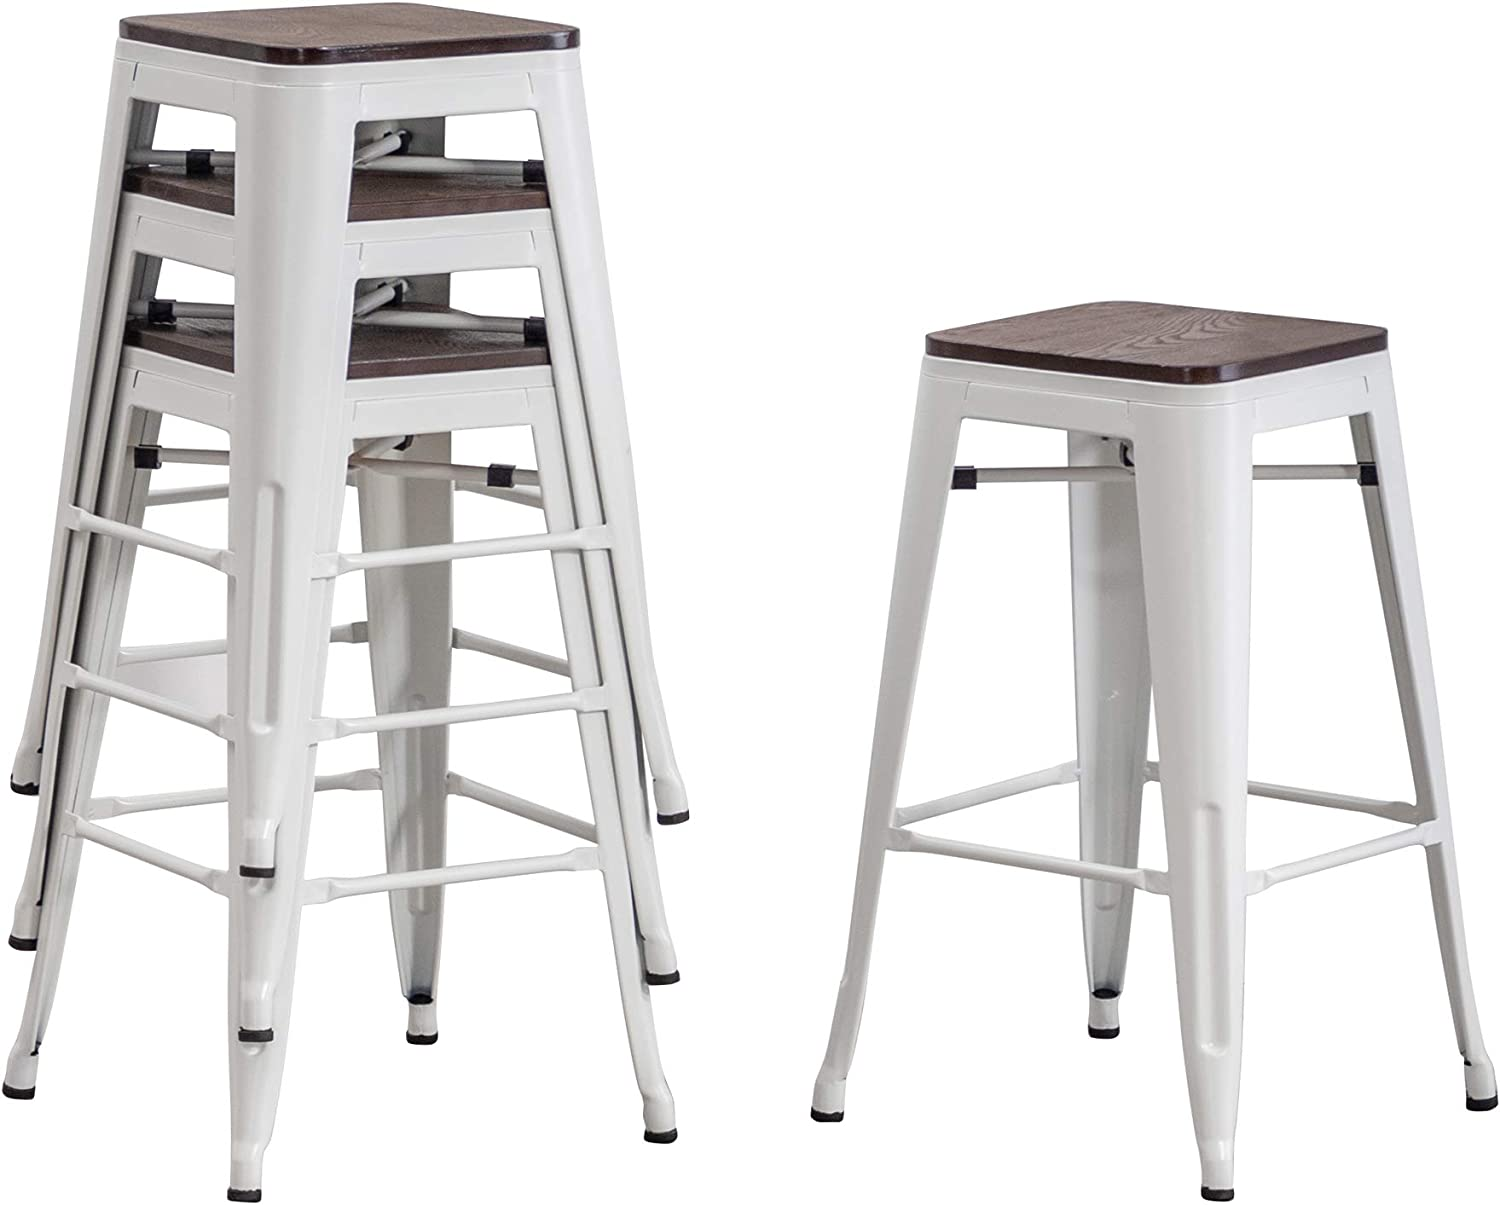 Stackable white metal farmhouse stools with wood seats